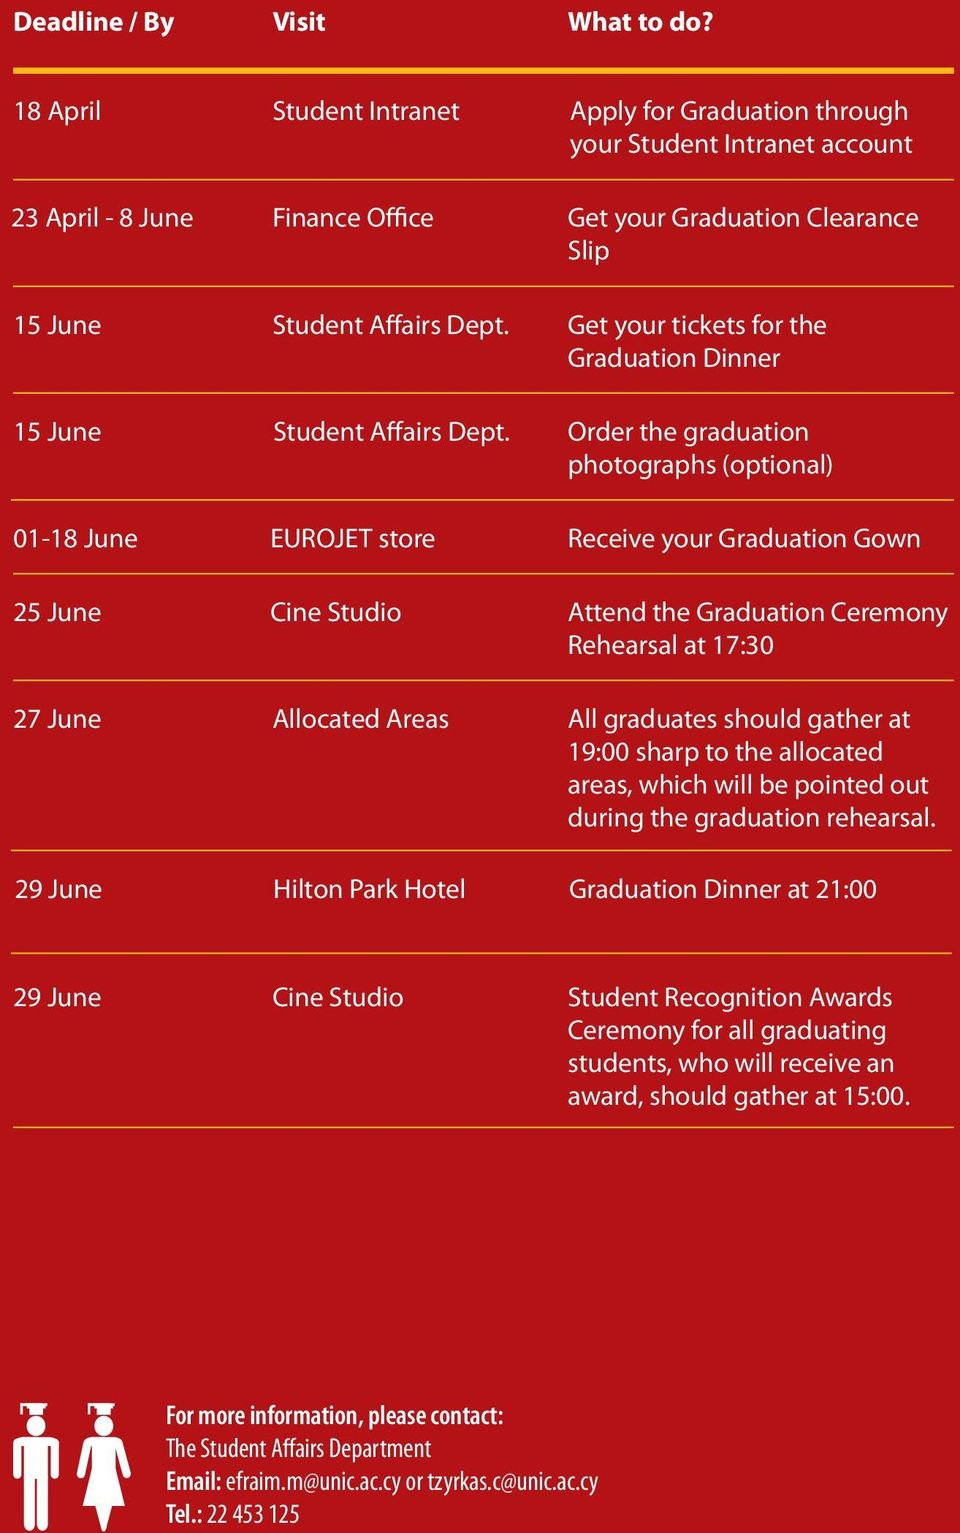 Get your tickets for the Graduation Dinner 15 June Student Affairs Dept.